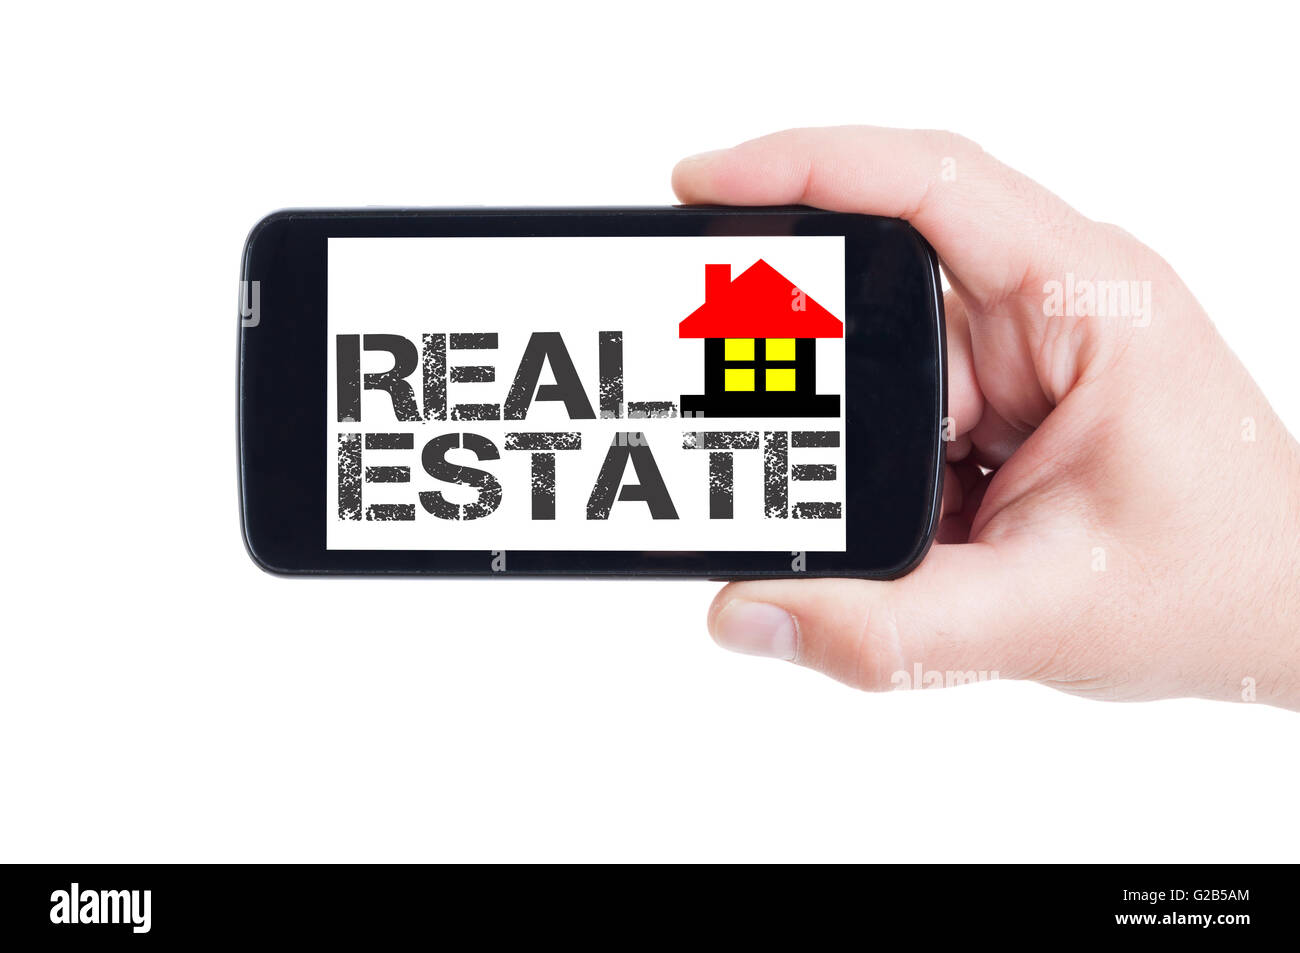 Real estate agency app on mobile phone screen or smartphone display Stock Photo